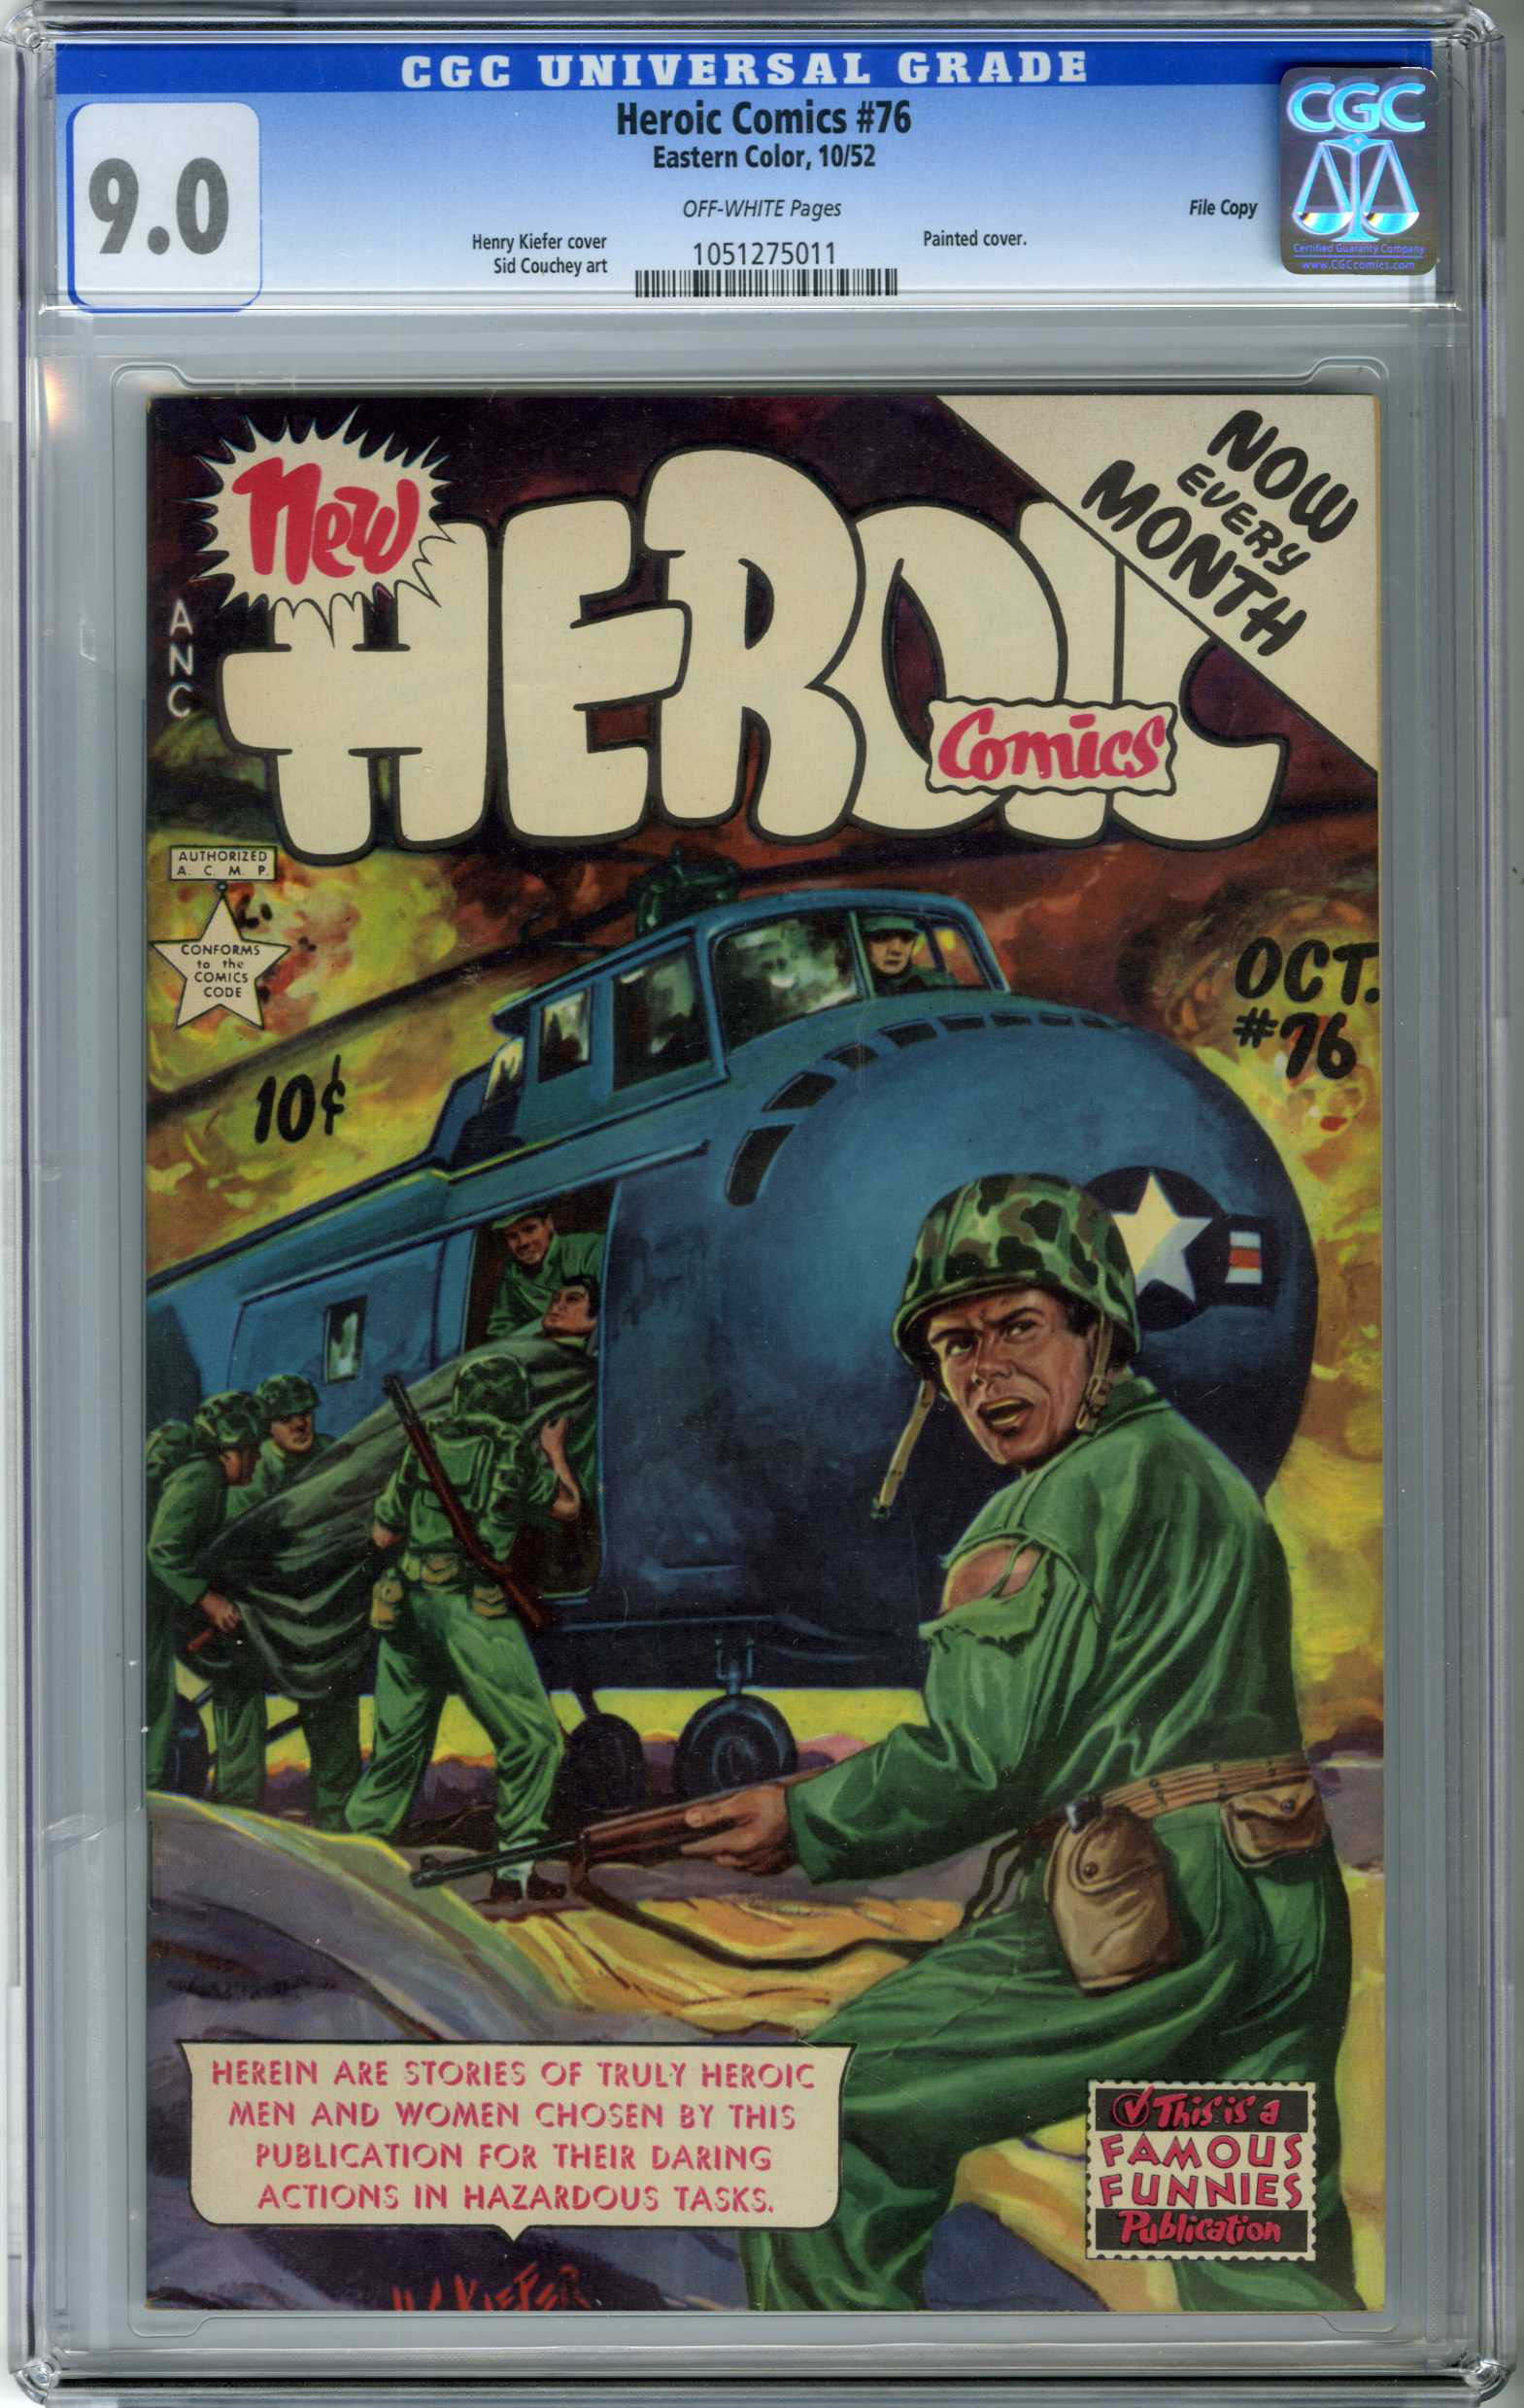 HEROIC COMICS #76 (1952) CGC VF/NM 9.0 OW Pages / FILE COPY / H.C. KIEFER COVER